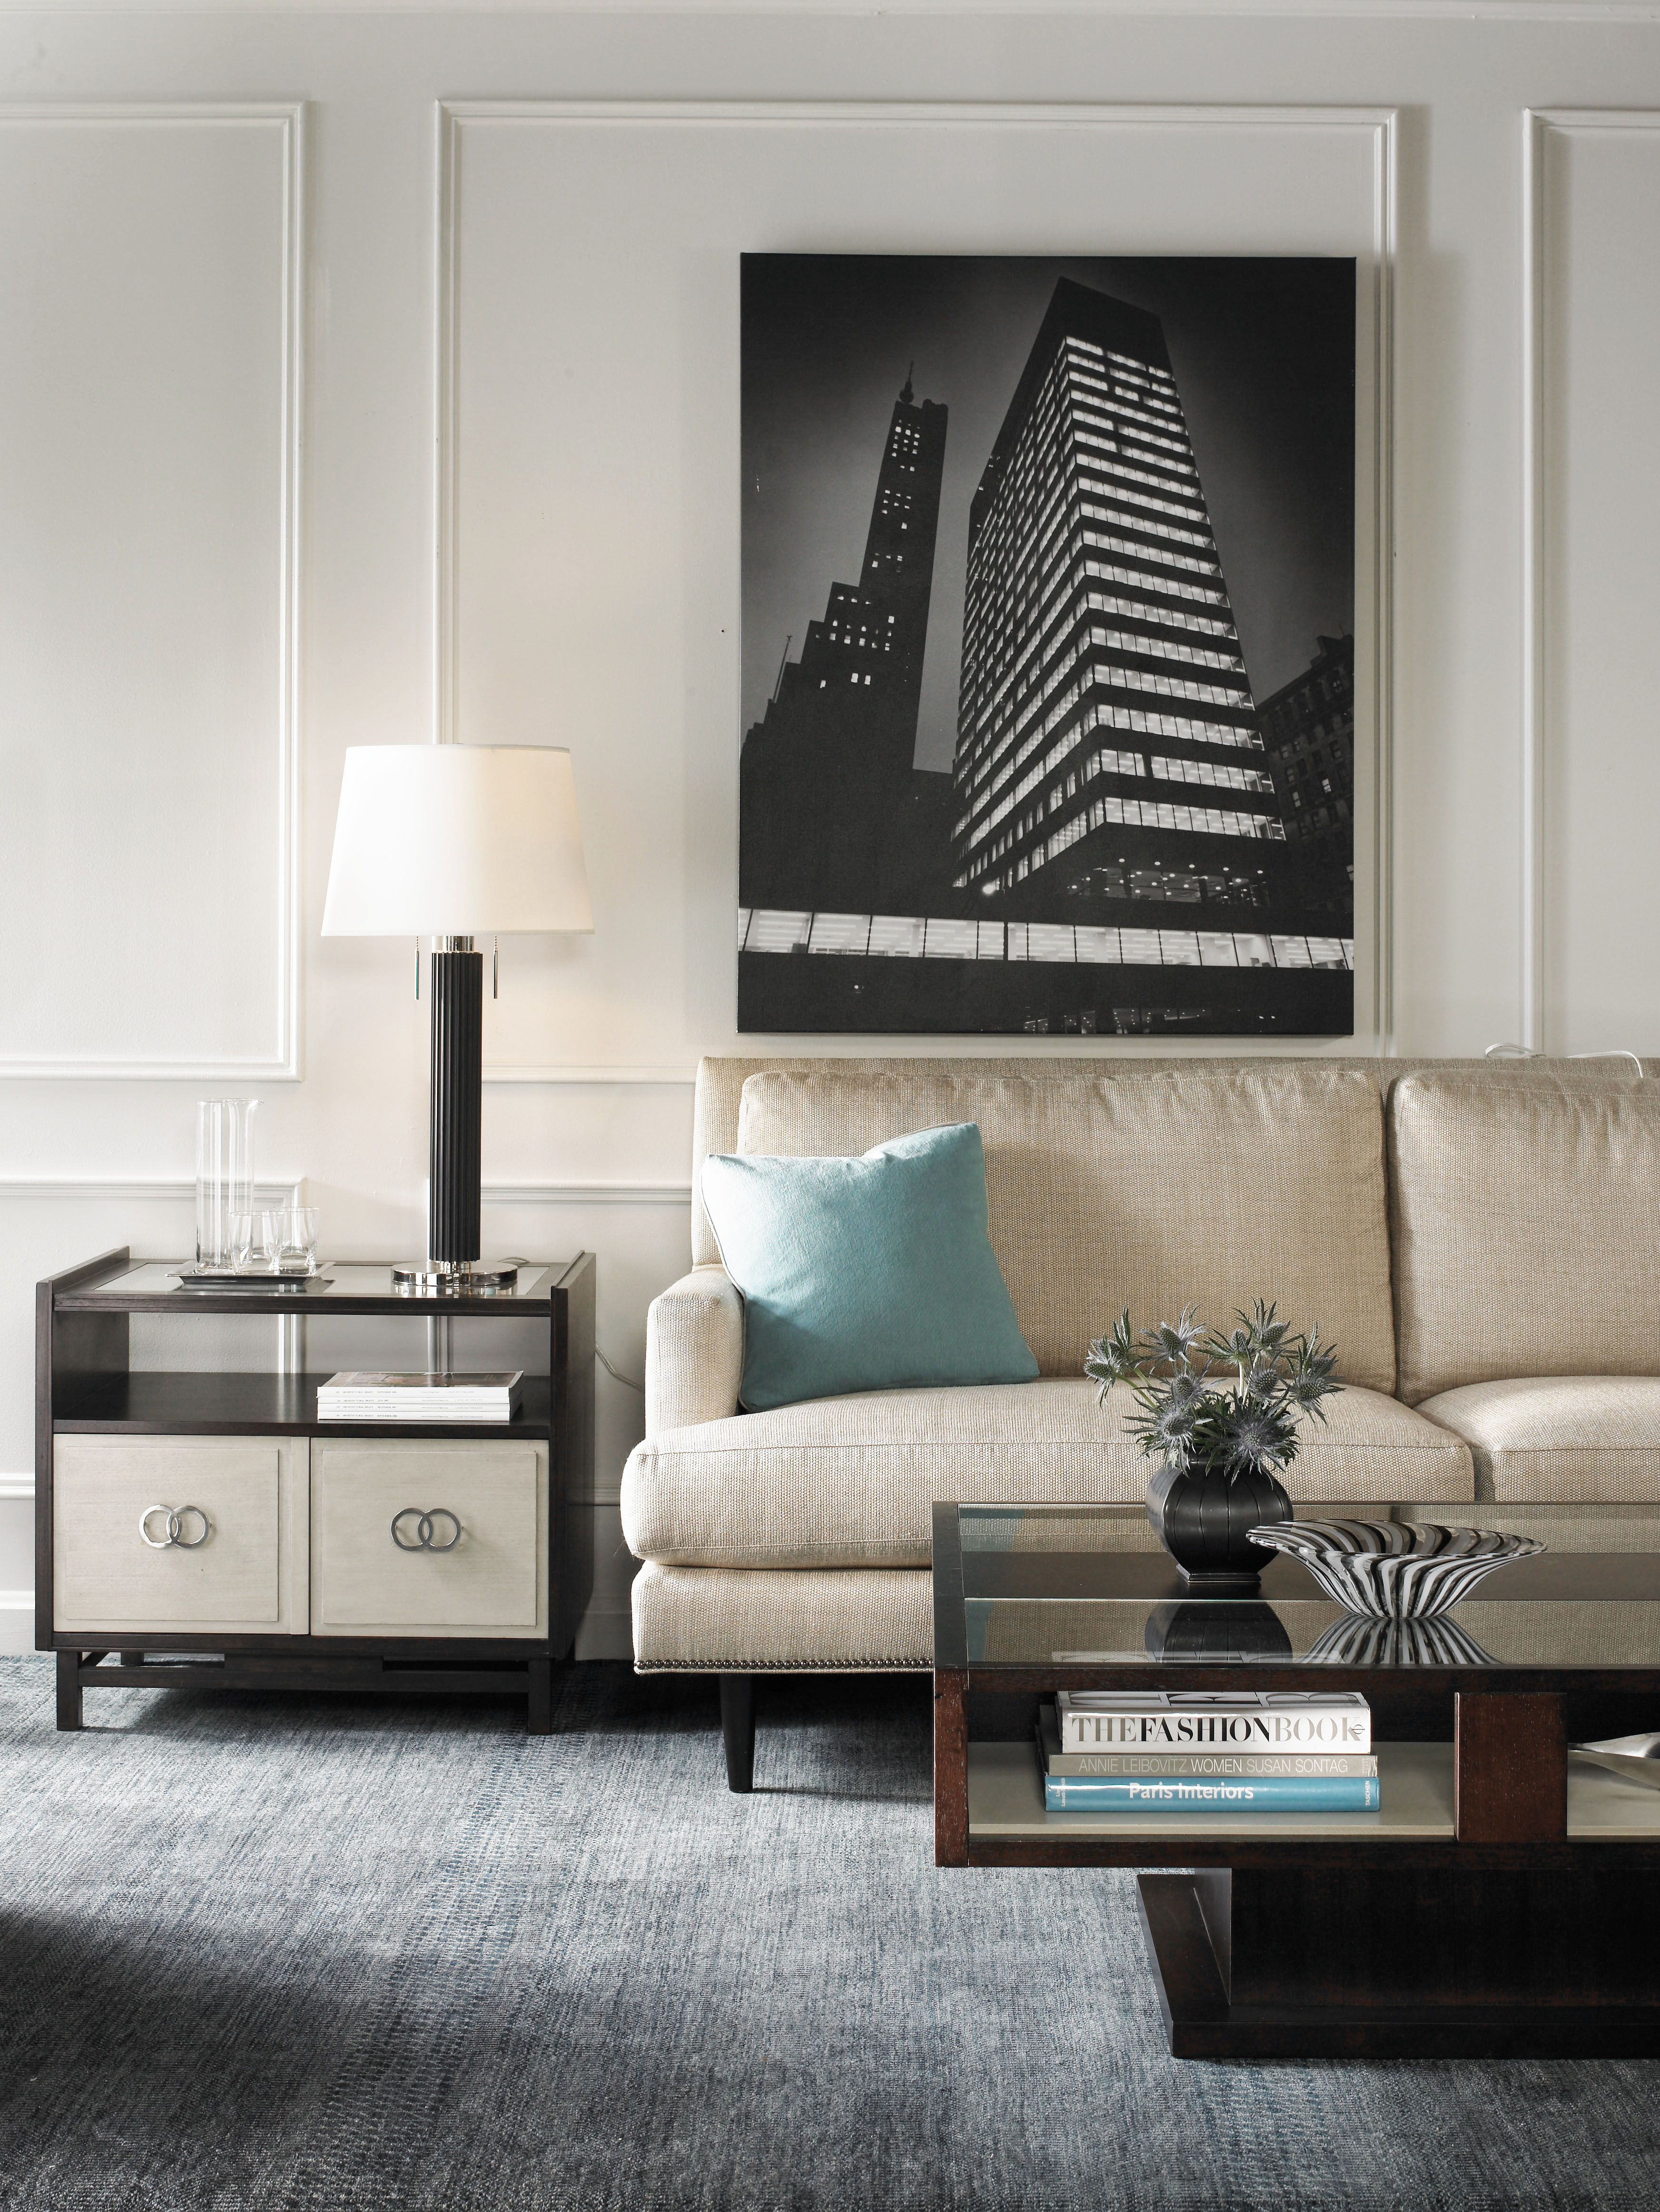 Modern end table with silver hardware and customizable finish upholstered sofa available in a variety of fabrics